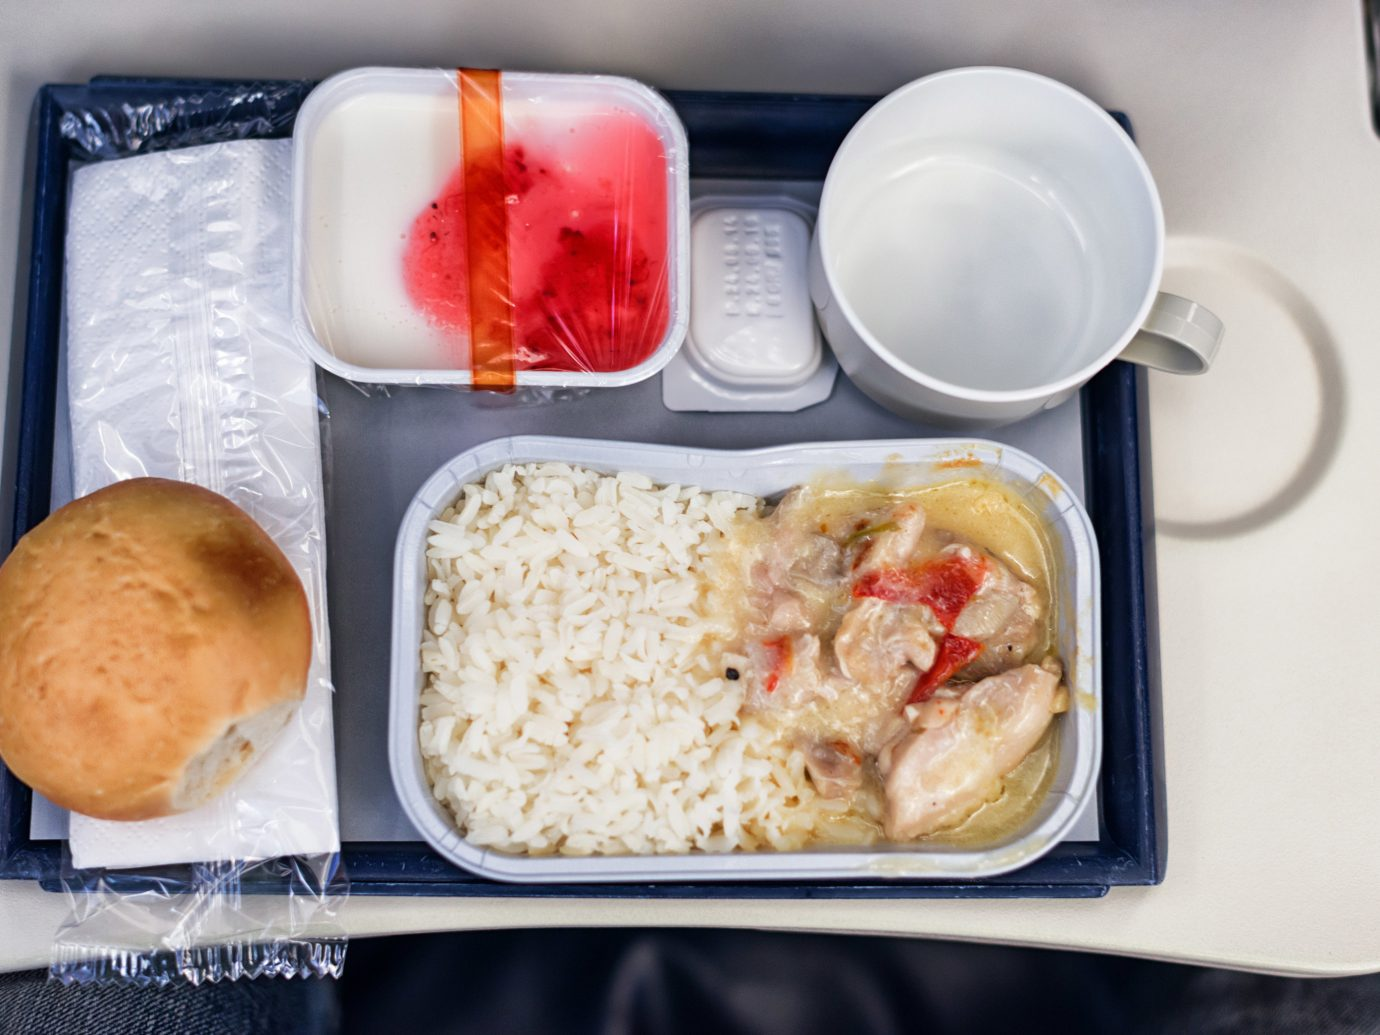 Offbeat food container dish lunch meal plate breakfast rice tray cuisine asian food produce plastic